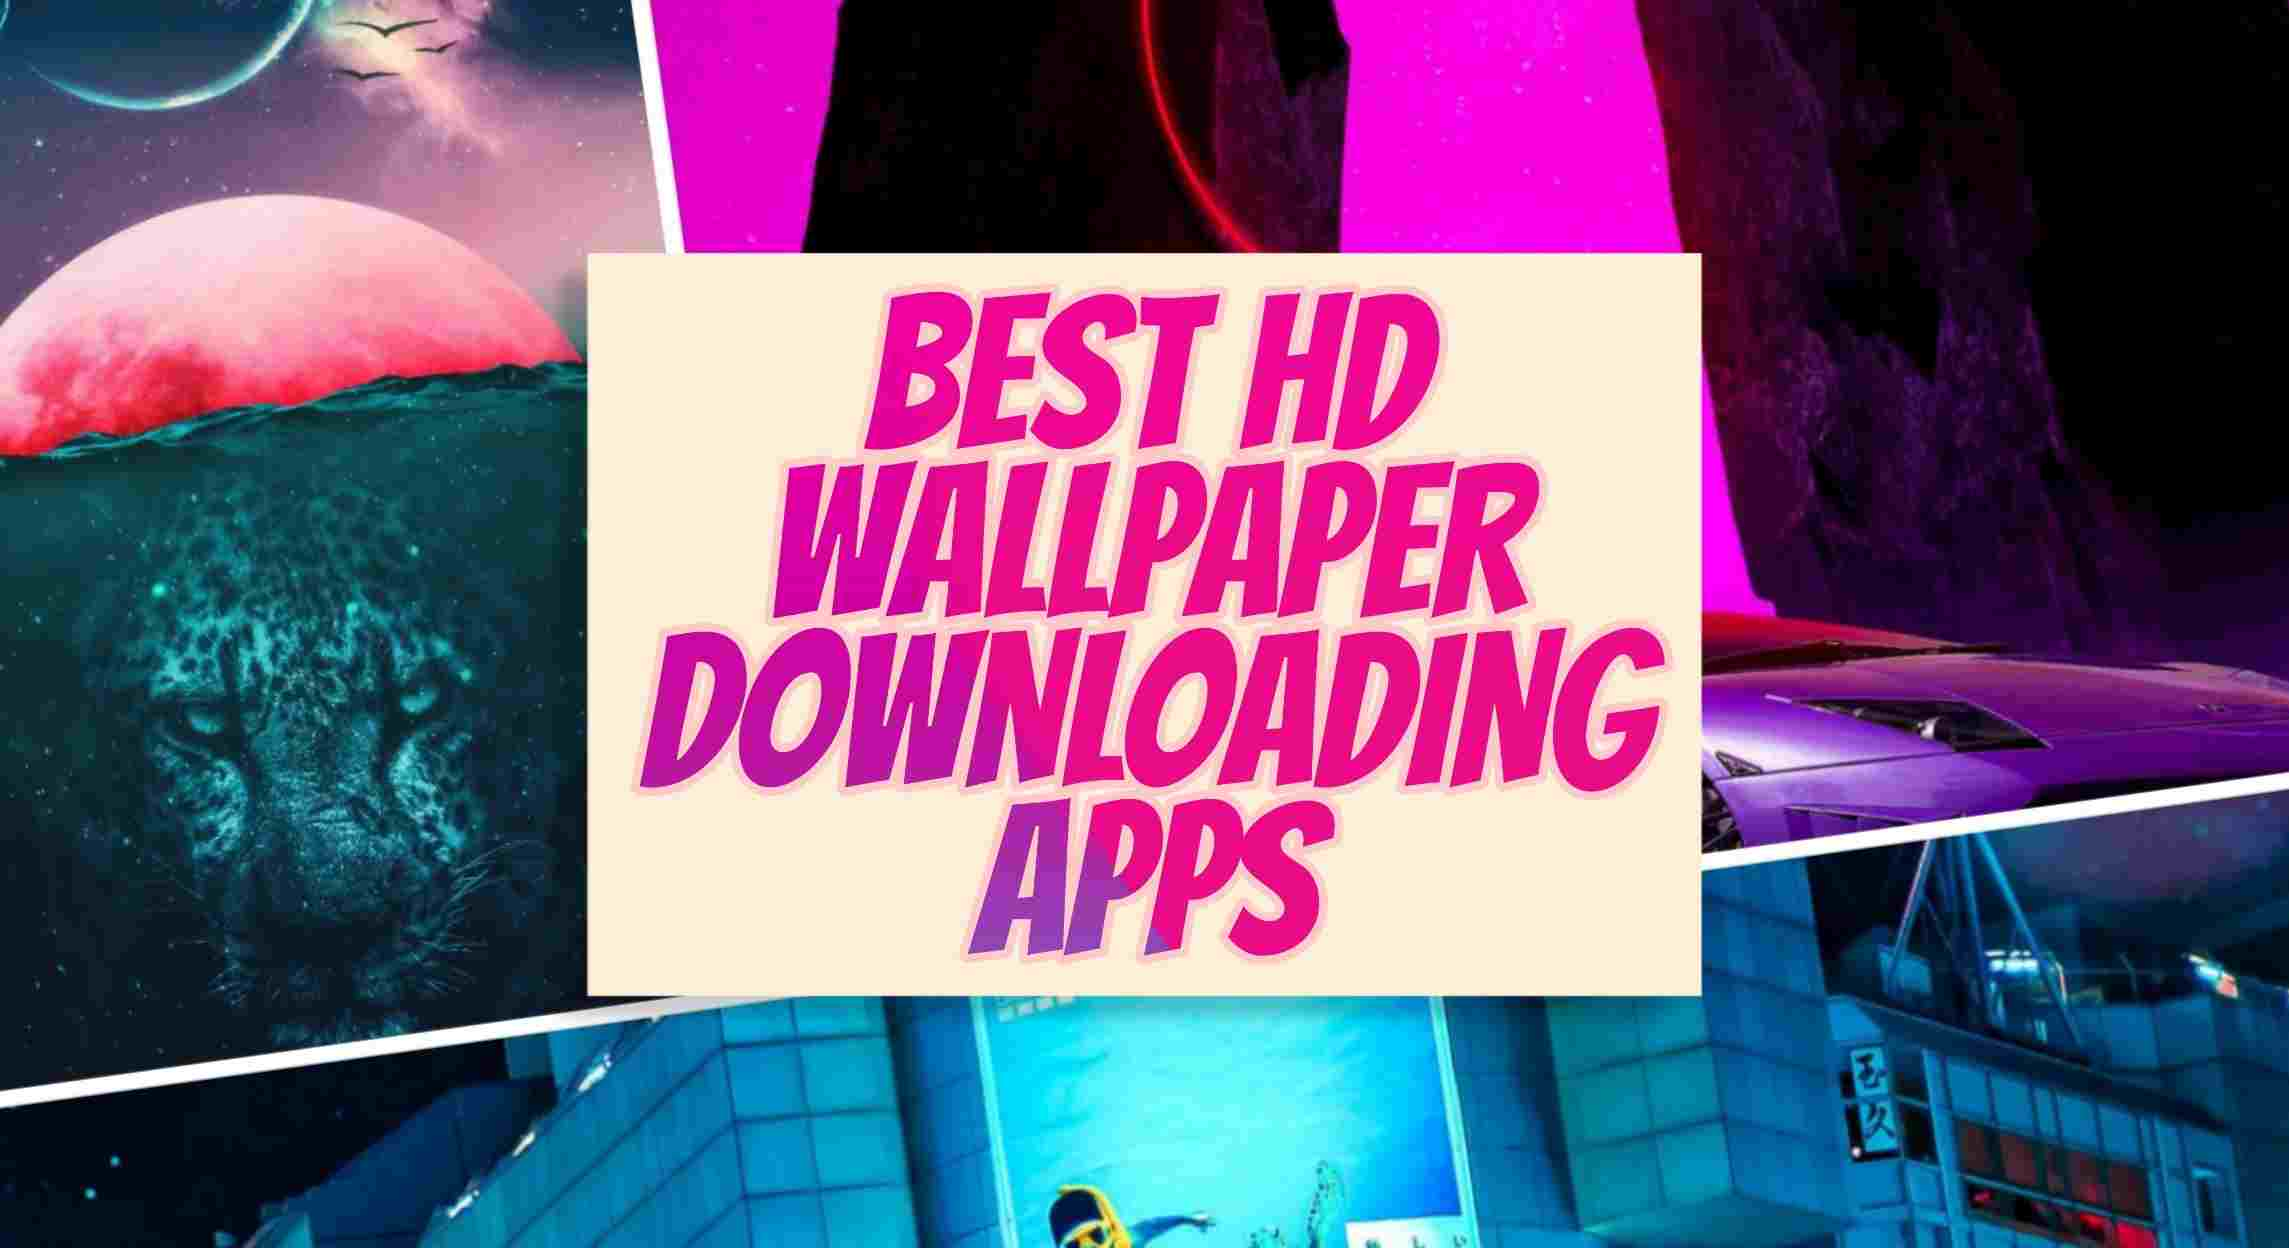 Top 10 Best HD Wallpaper App For Android